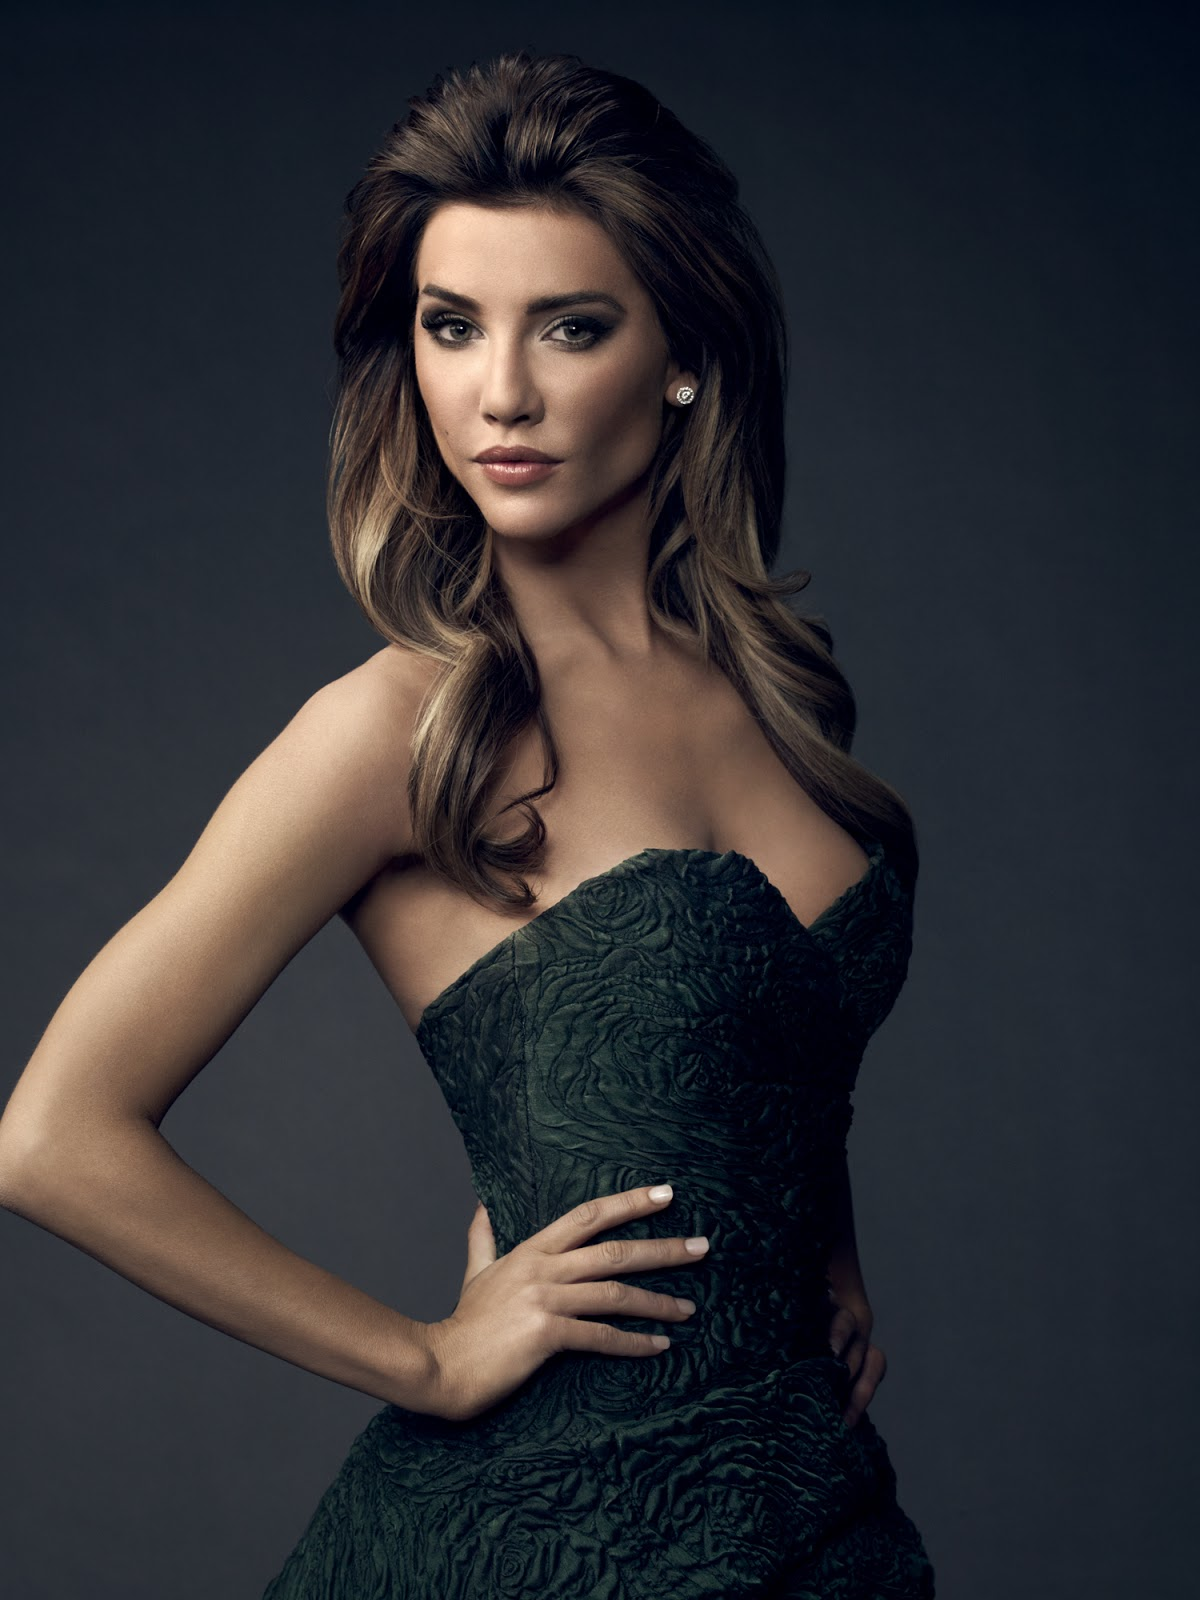 Jacqueline MacInnes Wood nudes (58 fotos), hacked Tits, iCloud, see through 2018